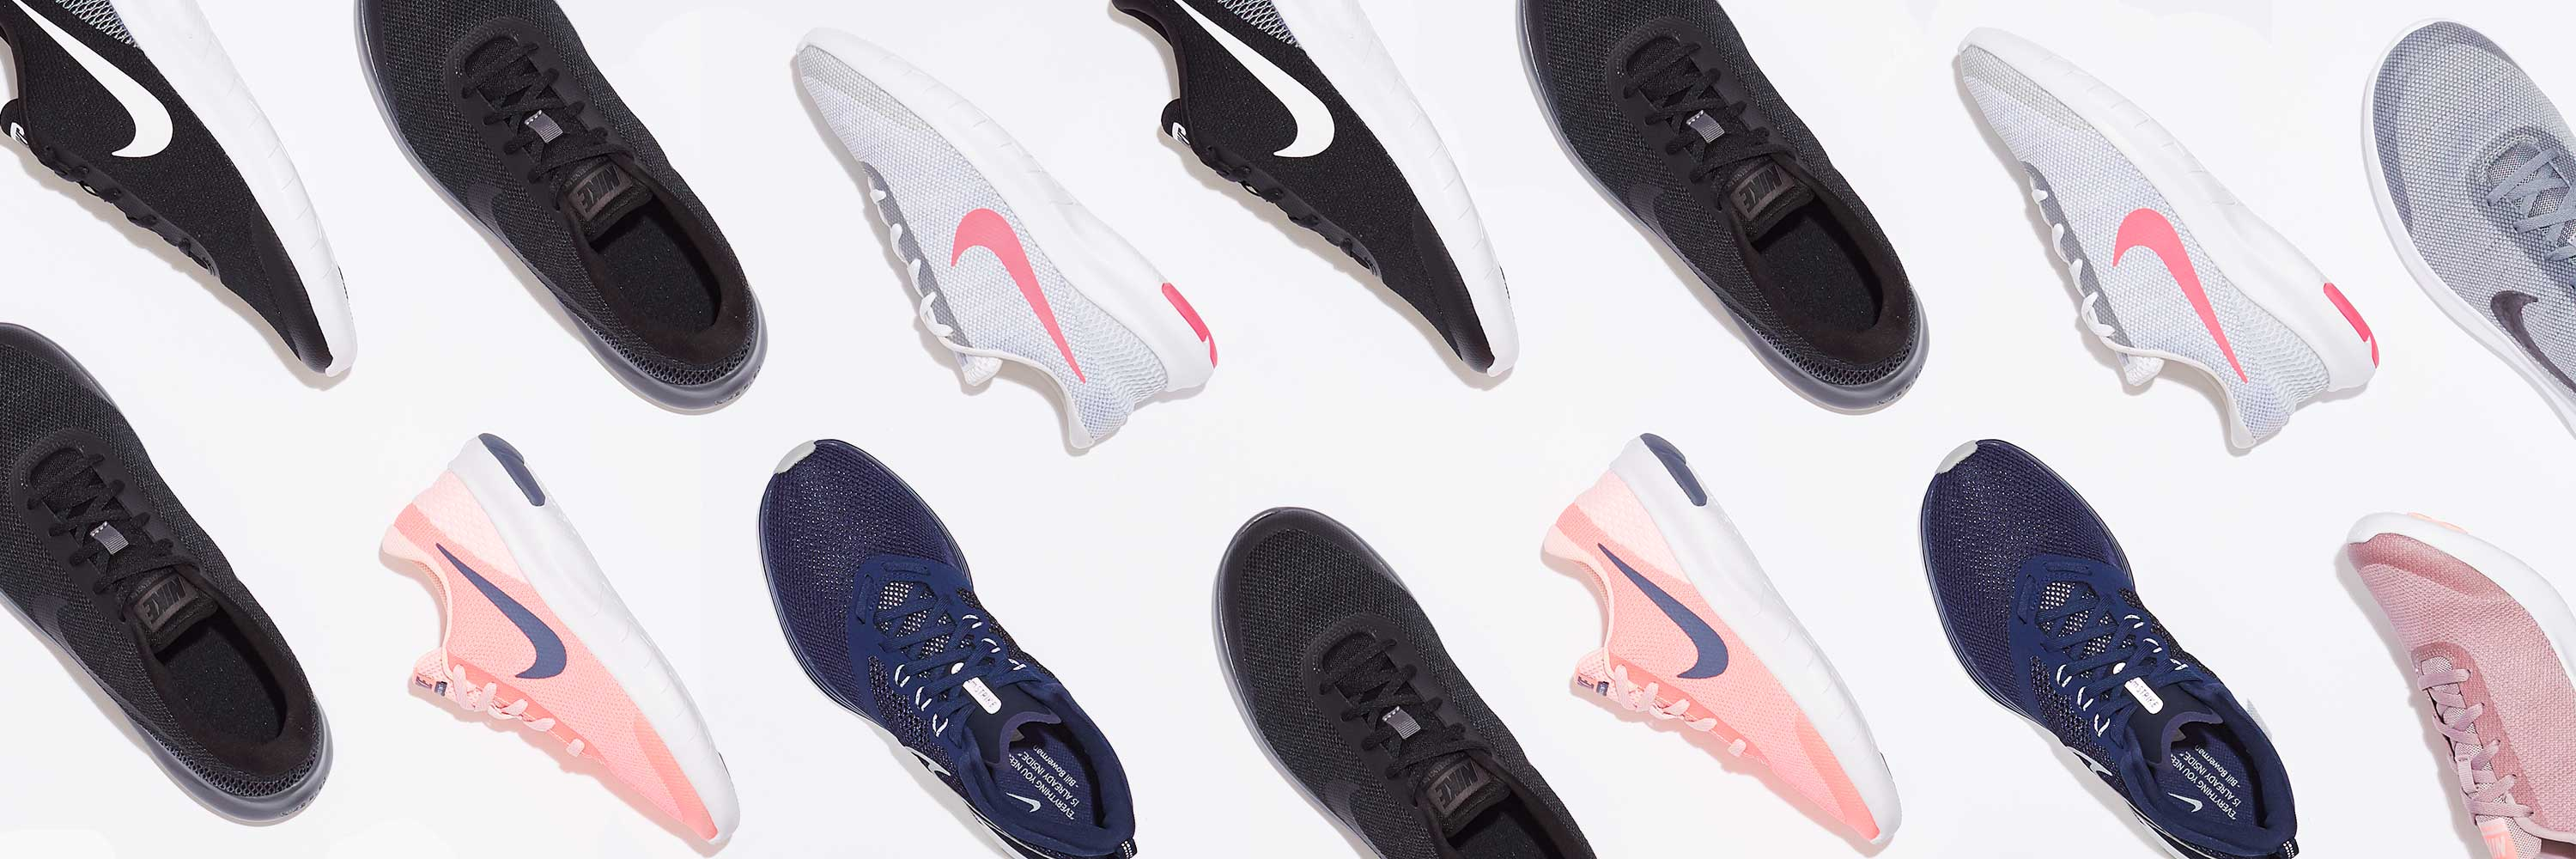 an assortment of nike shoes